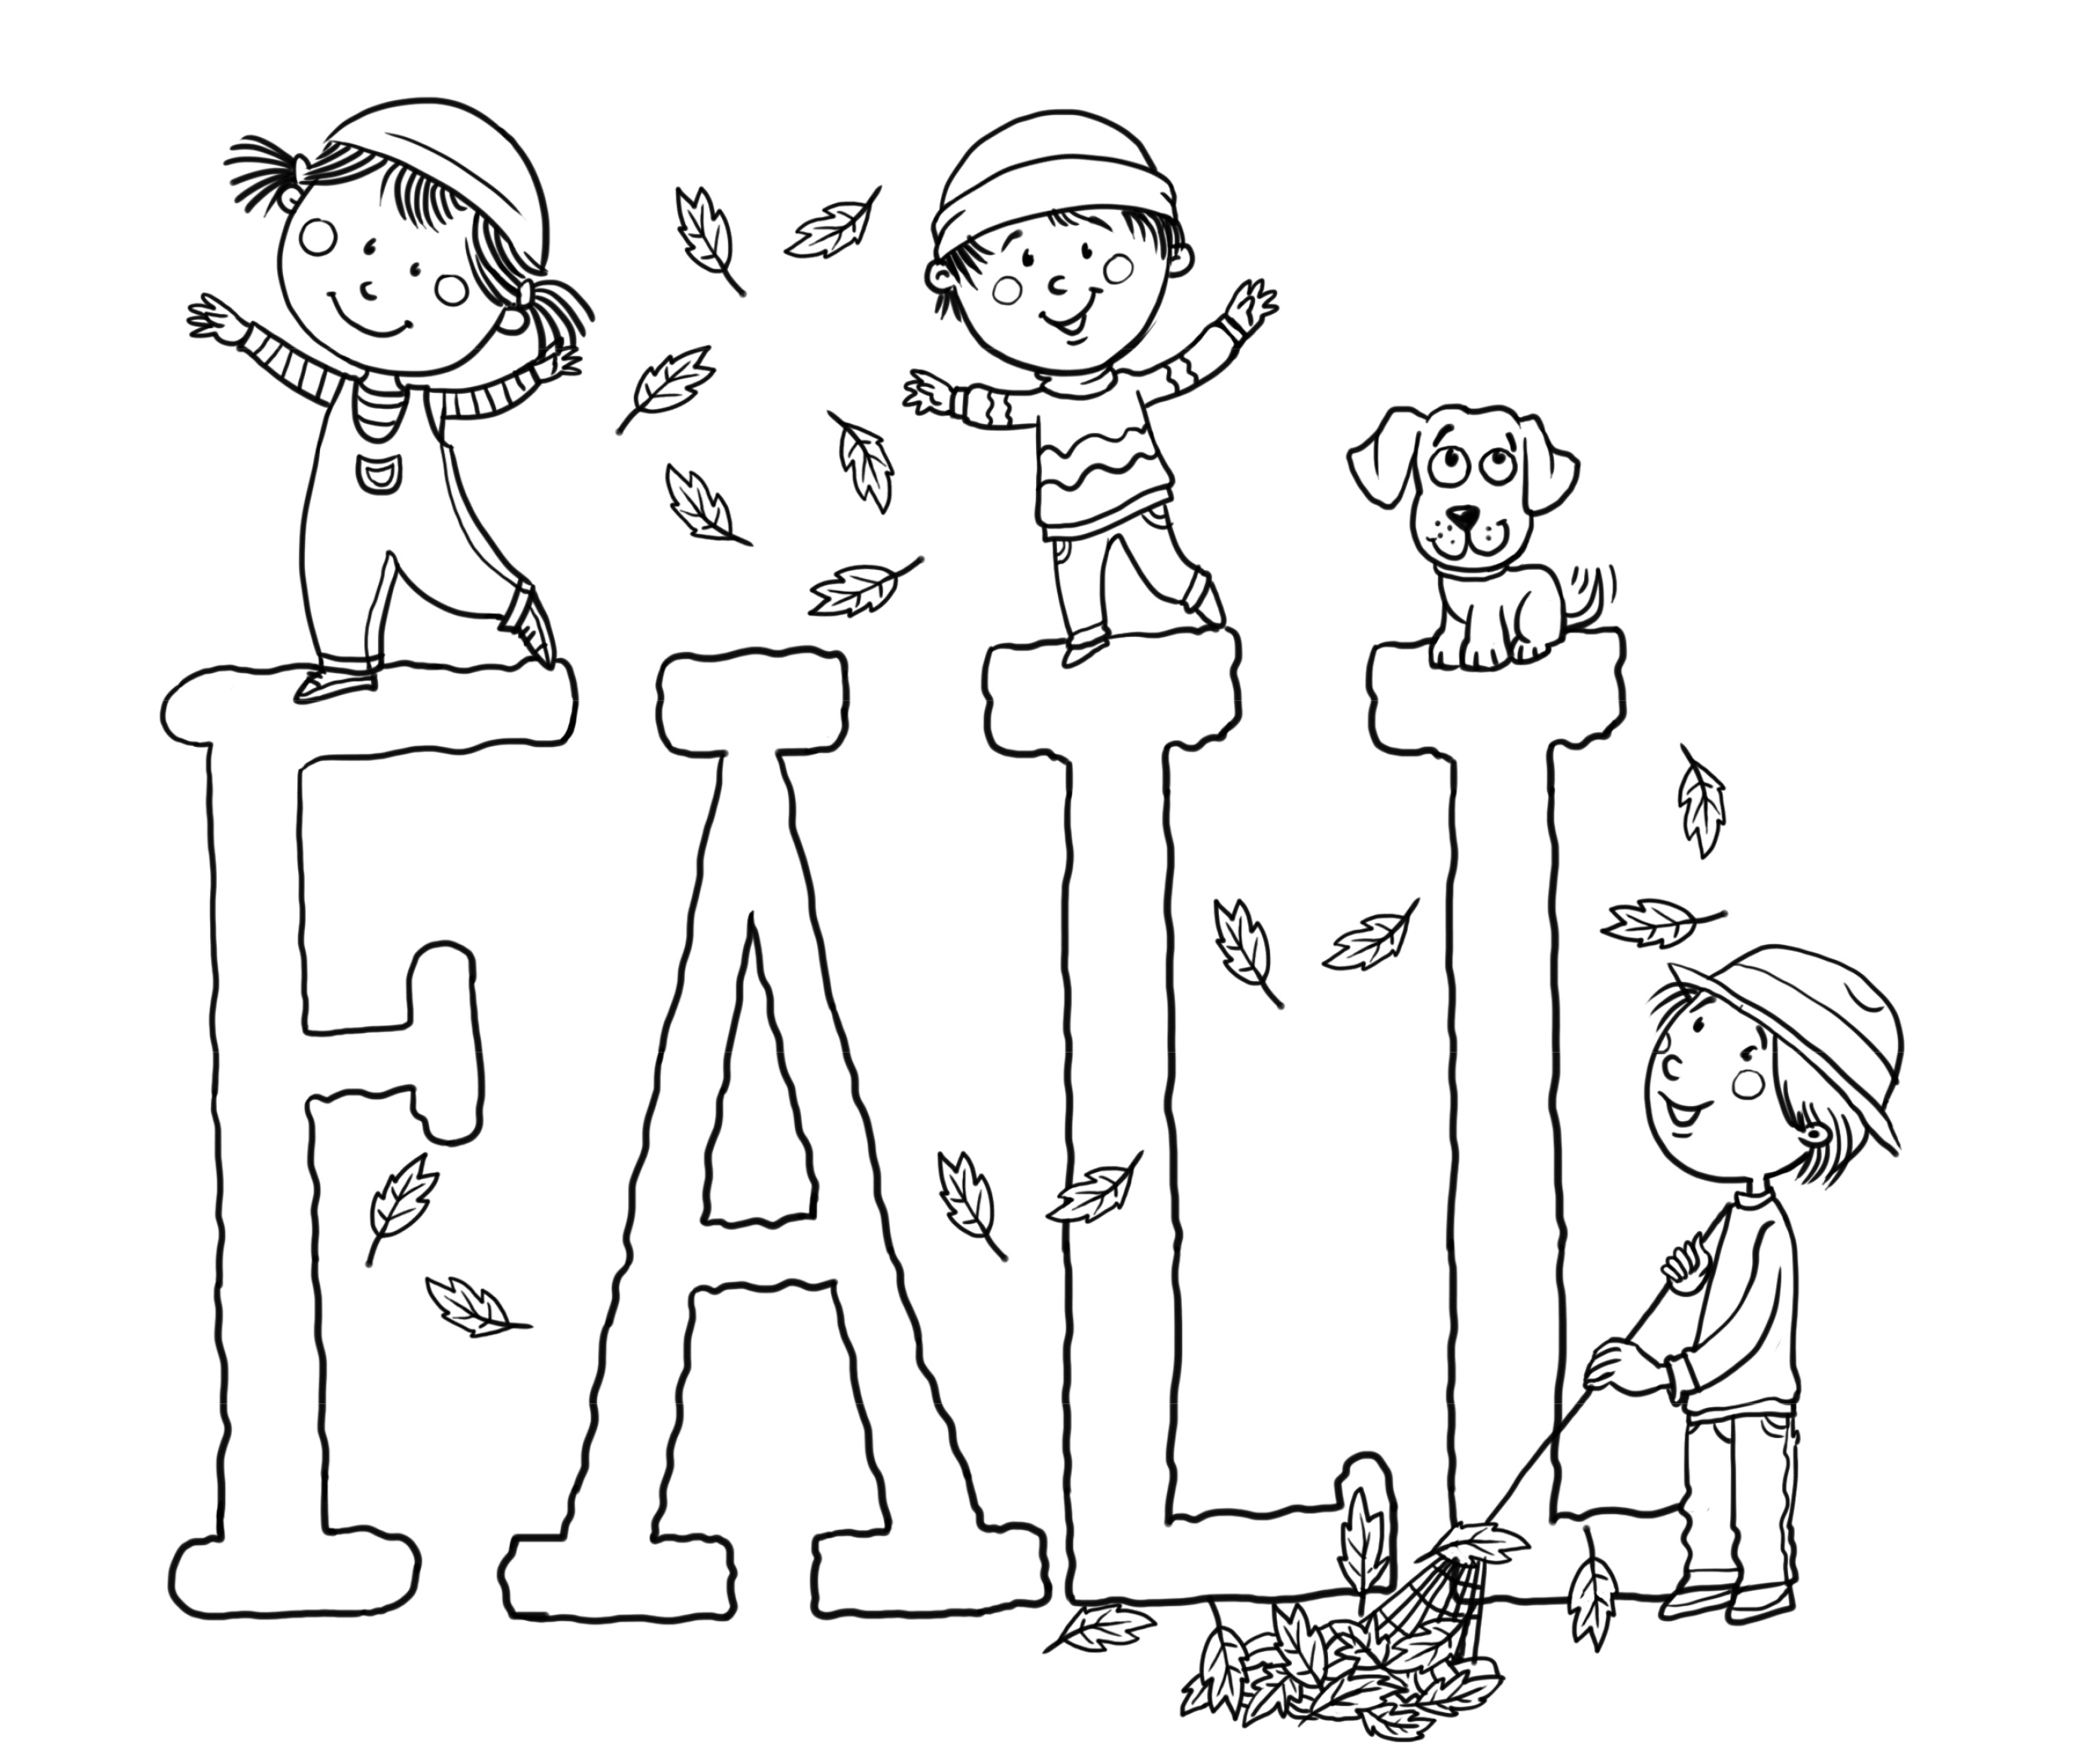 Free Printable Fall Coloring Pages For Kids - Best Coloring Pages - Free Printable Autumn Coloring Sheets